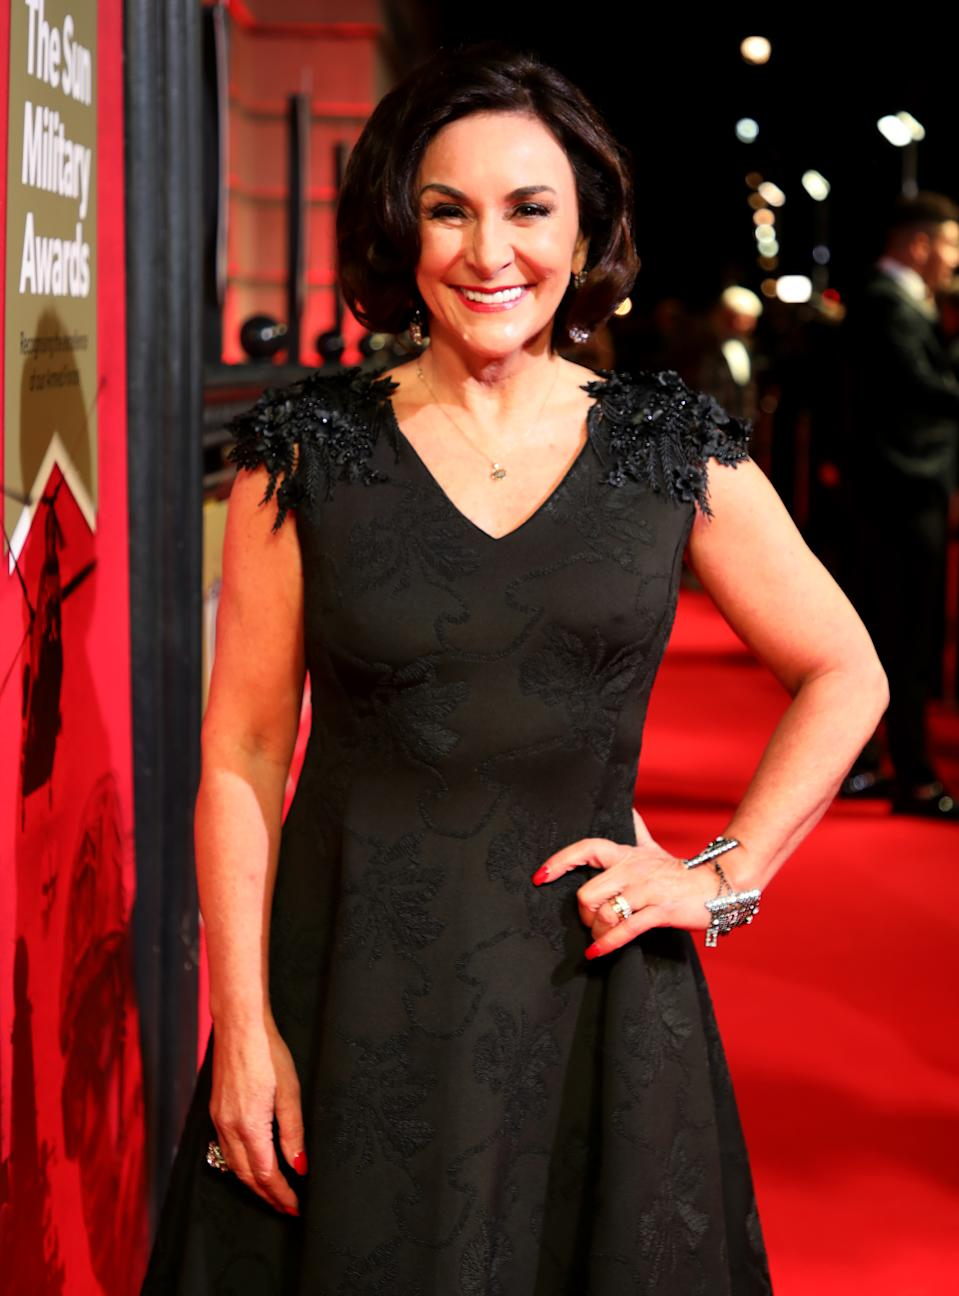 Shirley Ballas attending The Sun Military Awards 2020 held at the Banqueting House, London.